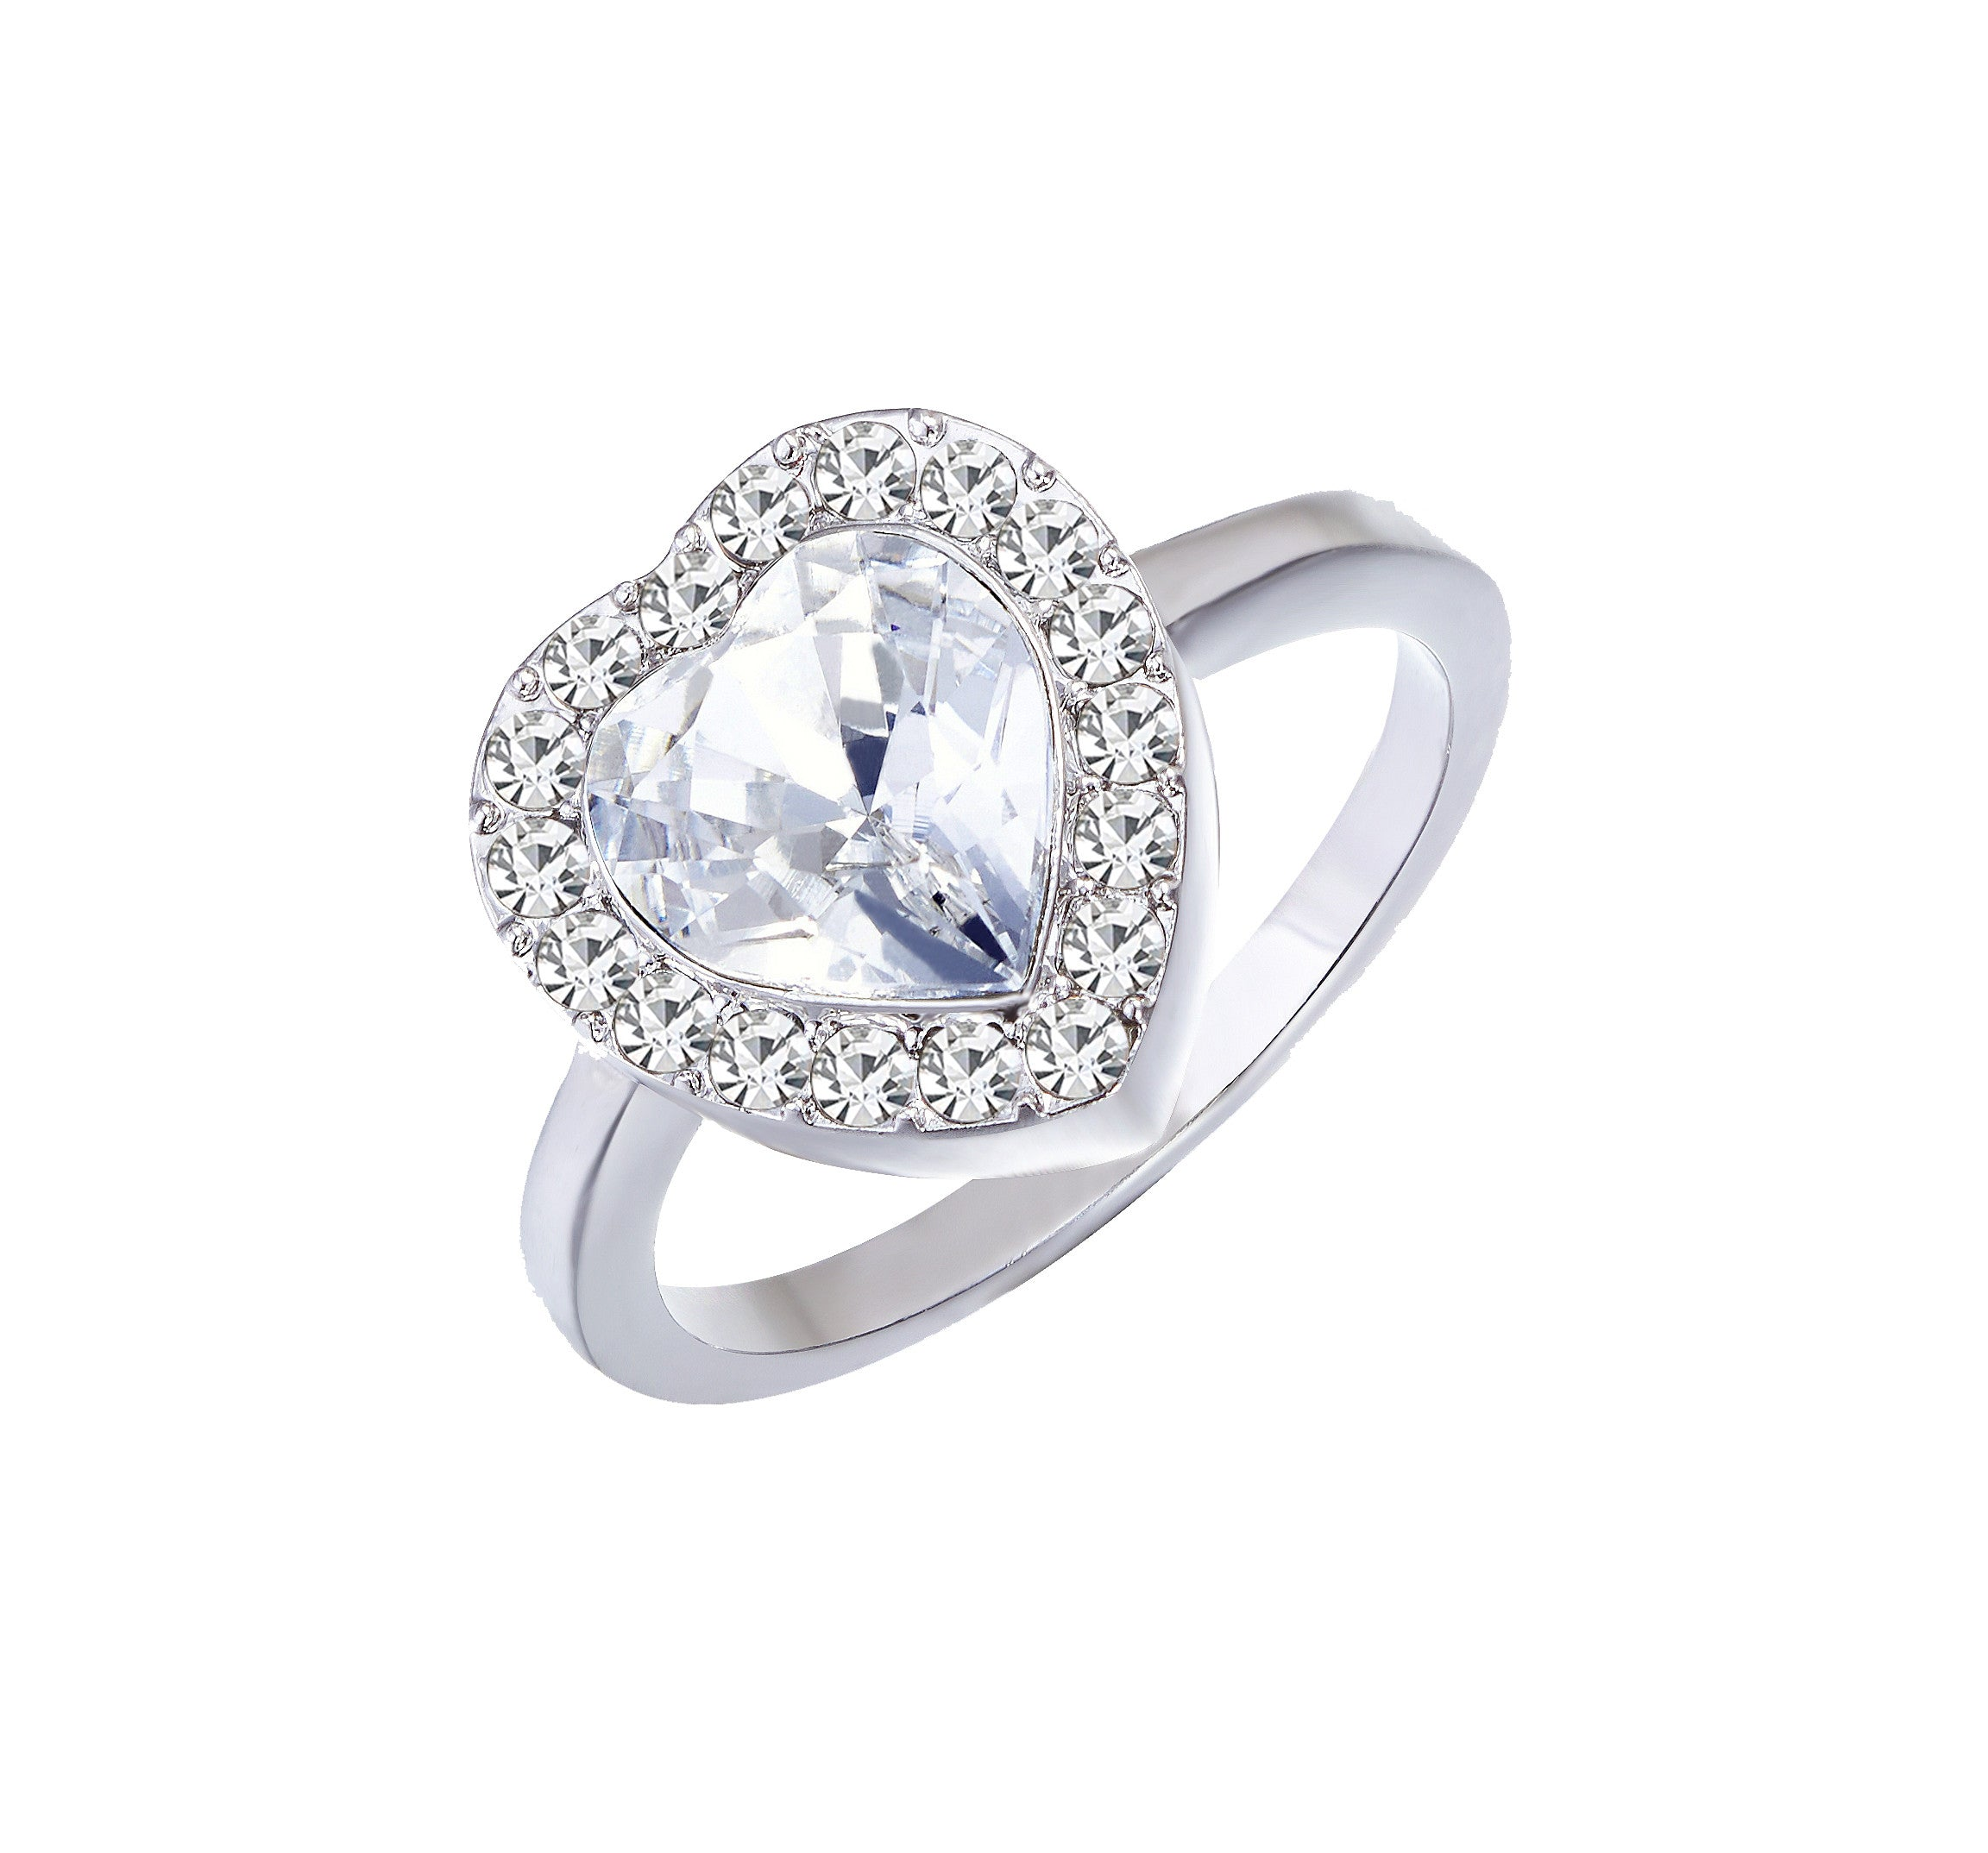 The shining heart shaped ring - CDE Jewelry Egypt